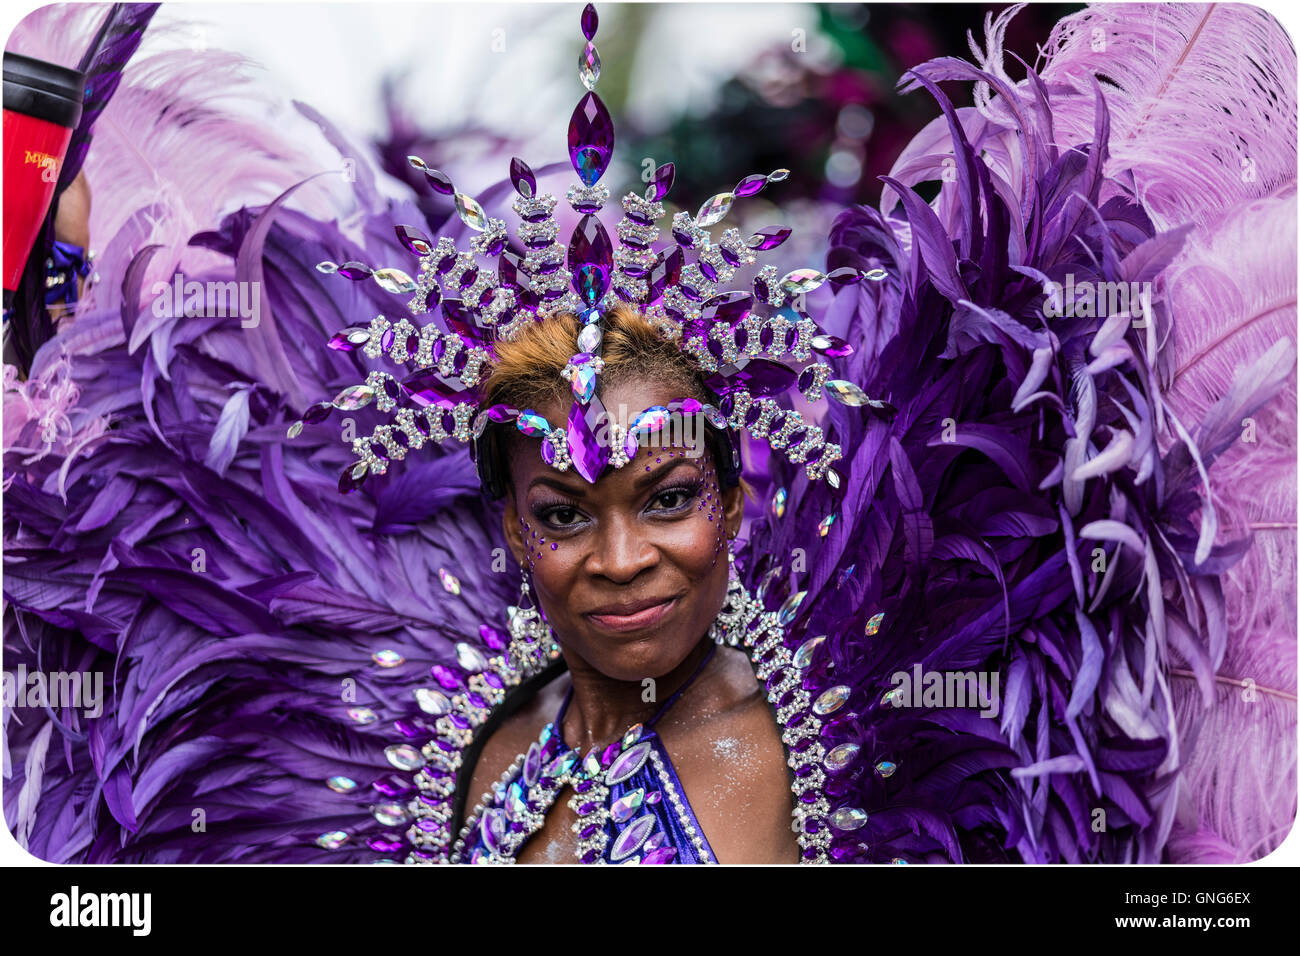 Beautiful Afro Caribbean woman in costume at the Notting Hill Carnival in West London in purple feathers - Stock Image